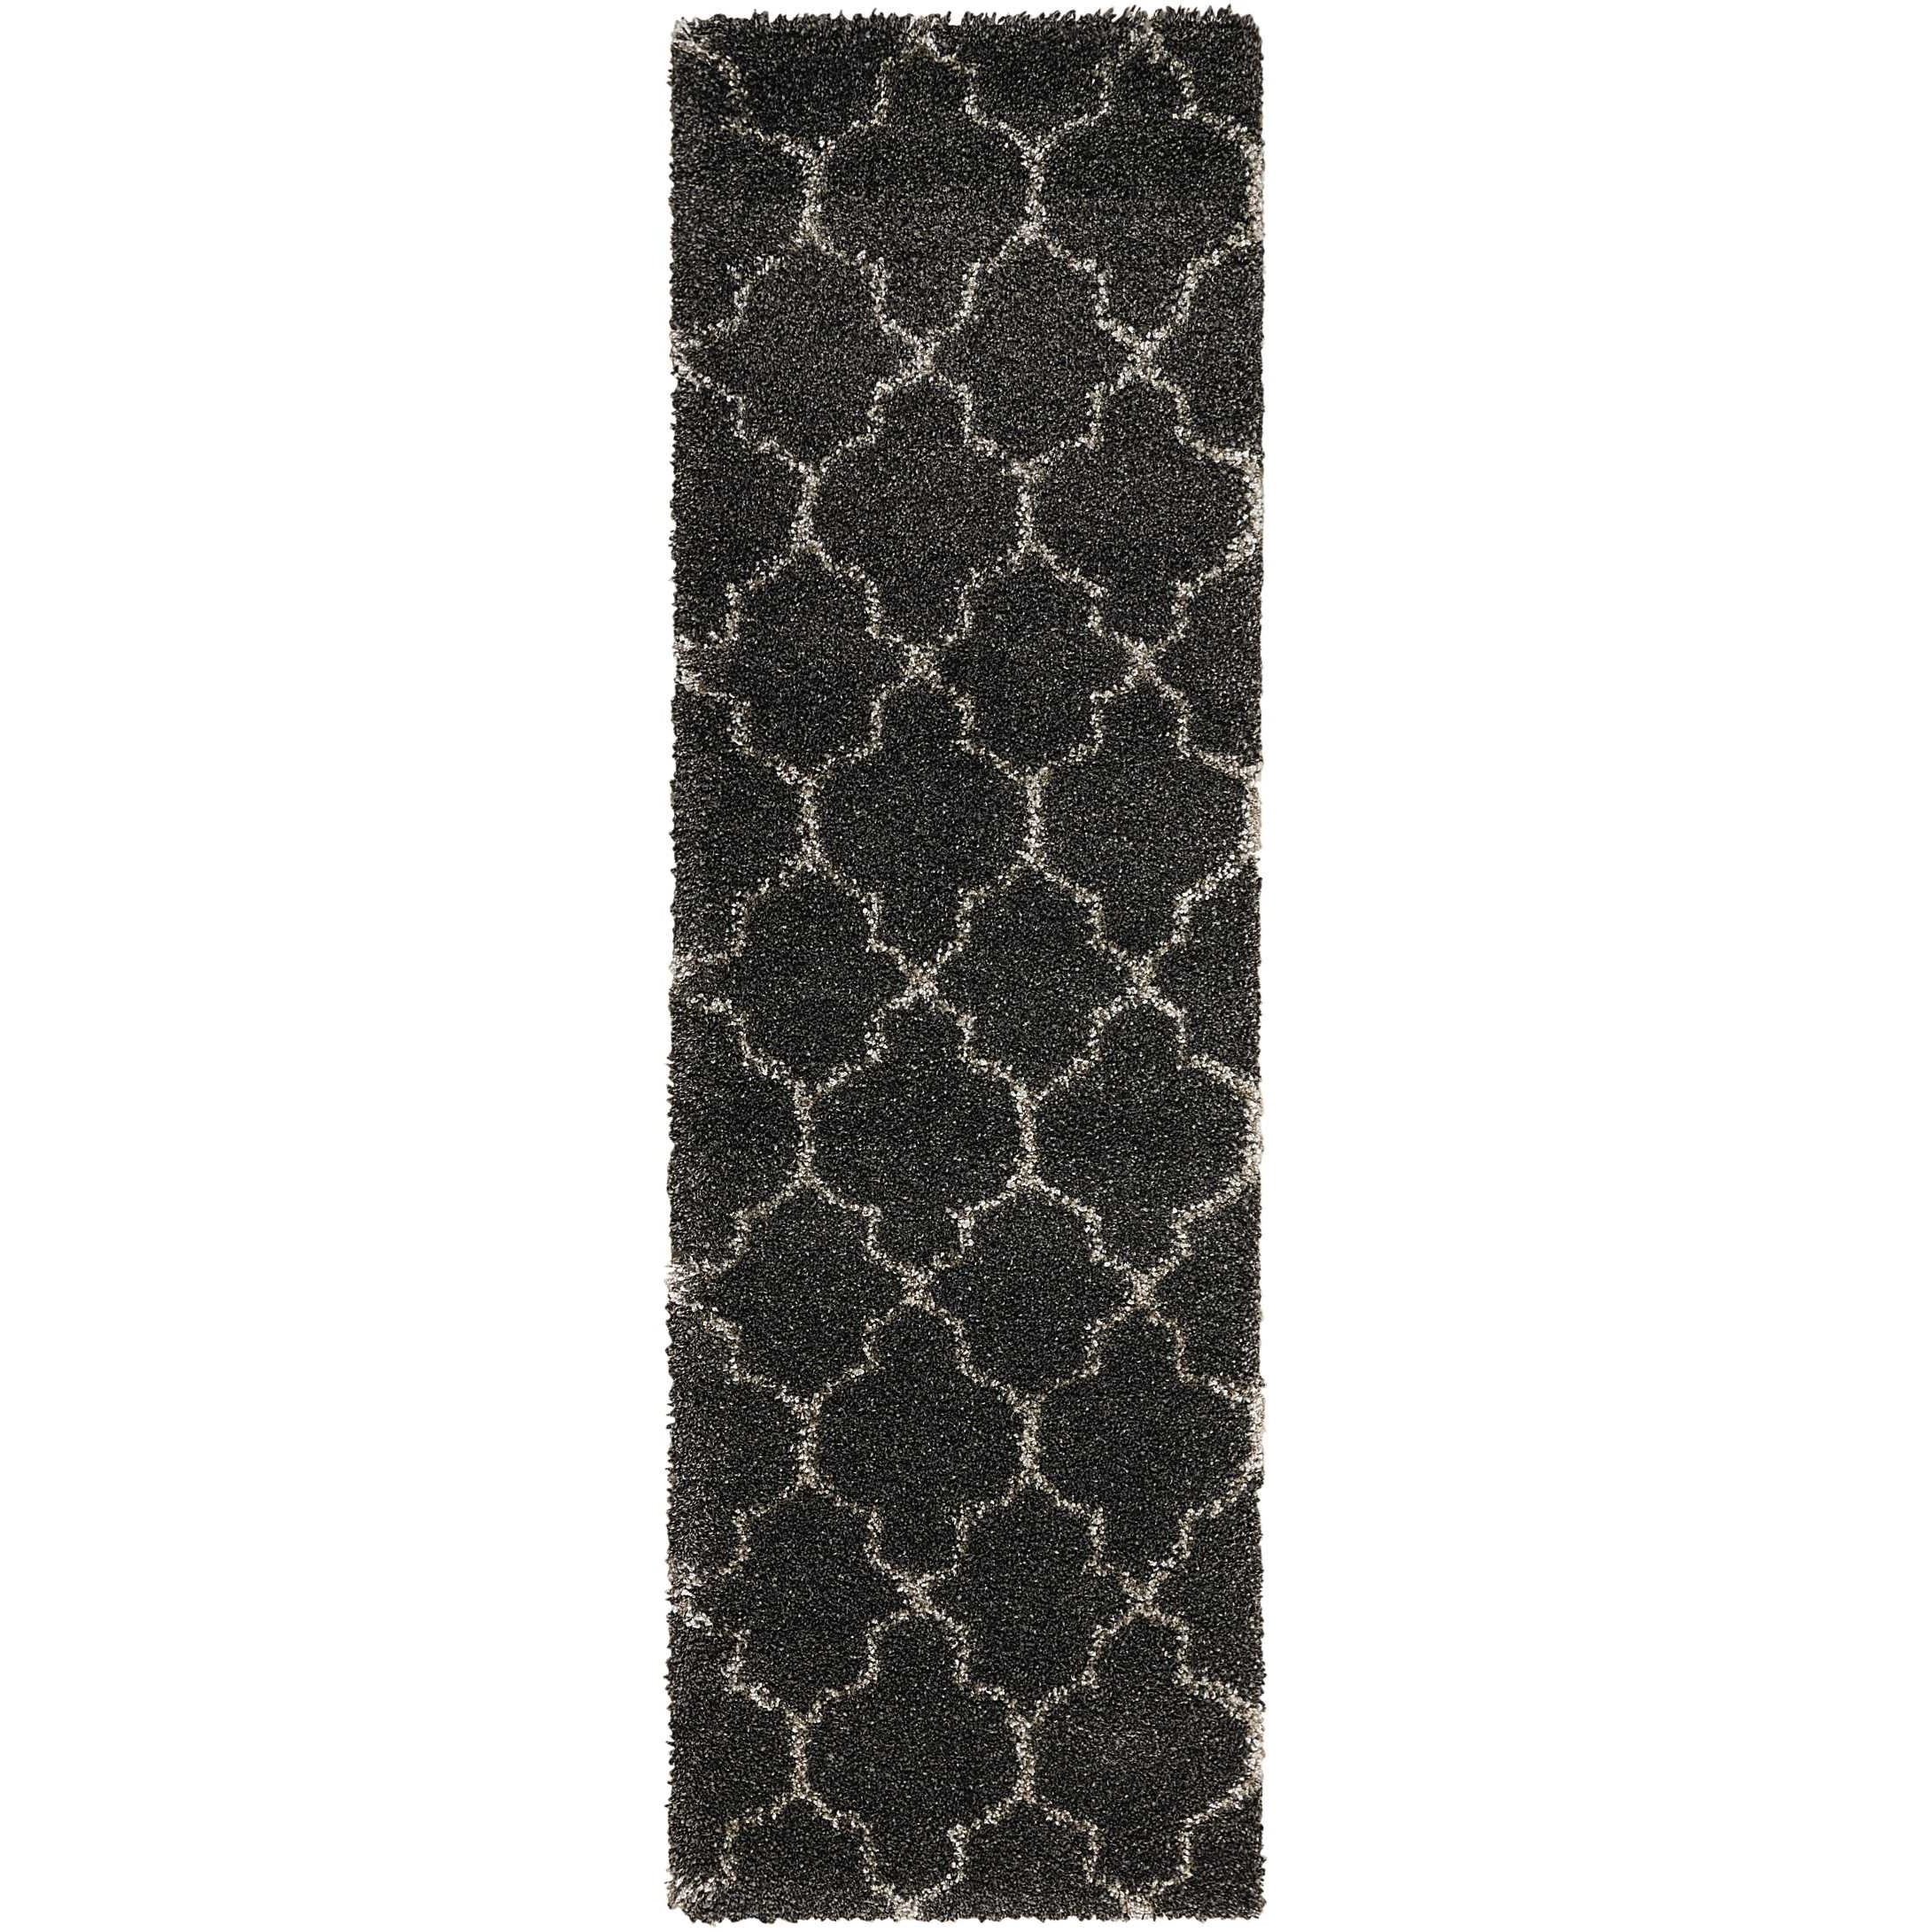 """Amore 2'2"""" x 7'6"""" Charcoal Runner Rug by Nourison at Home Collections Furniture"""